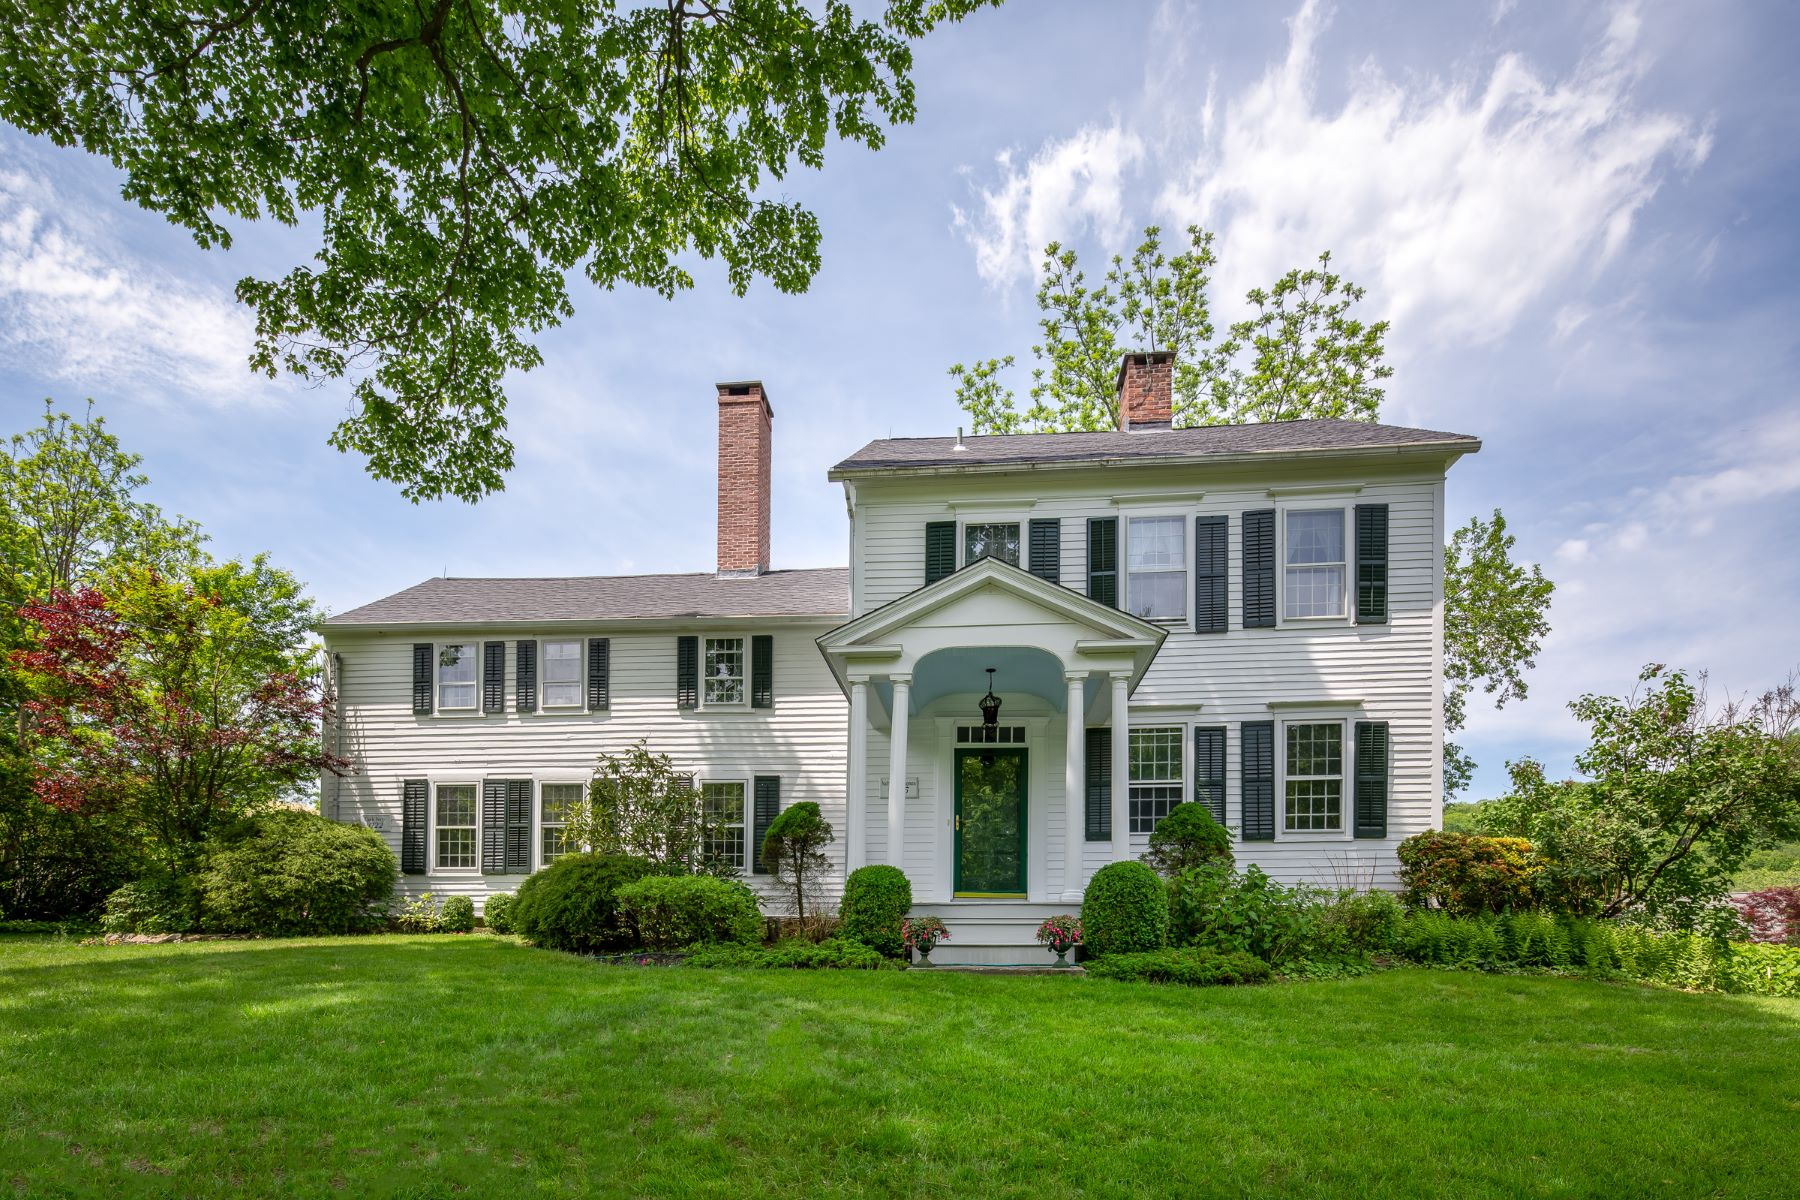 Single Family Home for Sale at Centuried Country Colonial 511 Quaker Farms Road Oxford, Connecticut 06478 United States